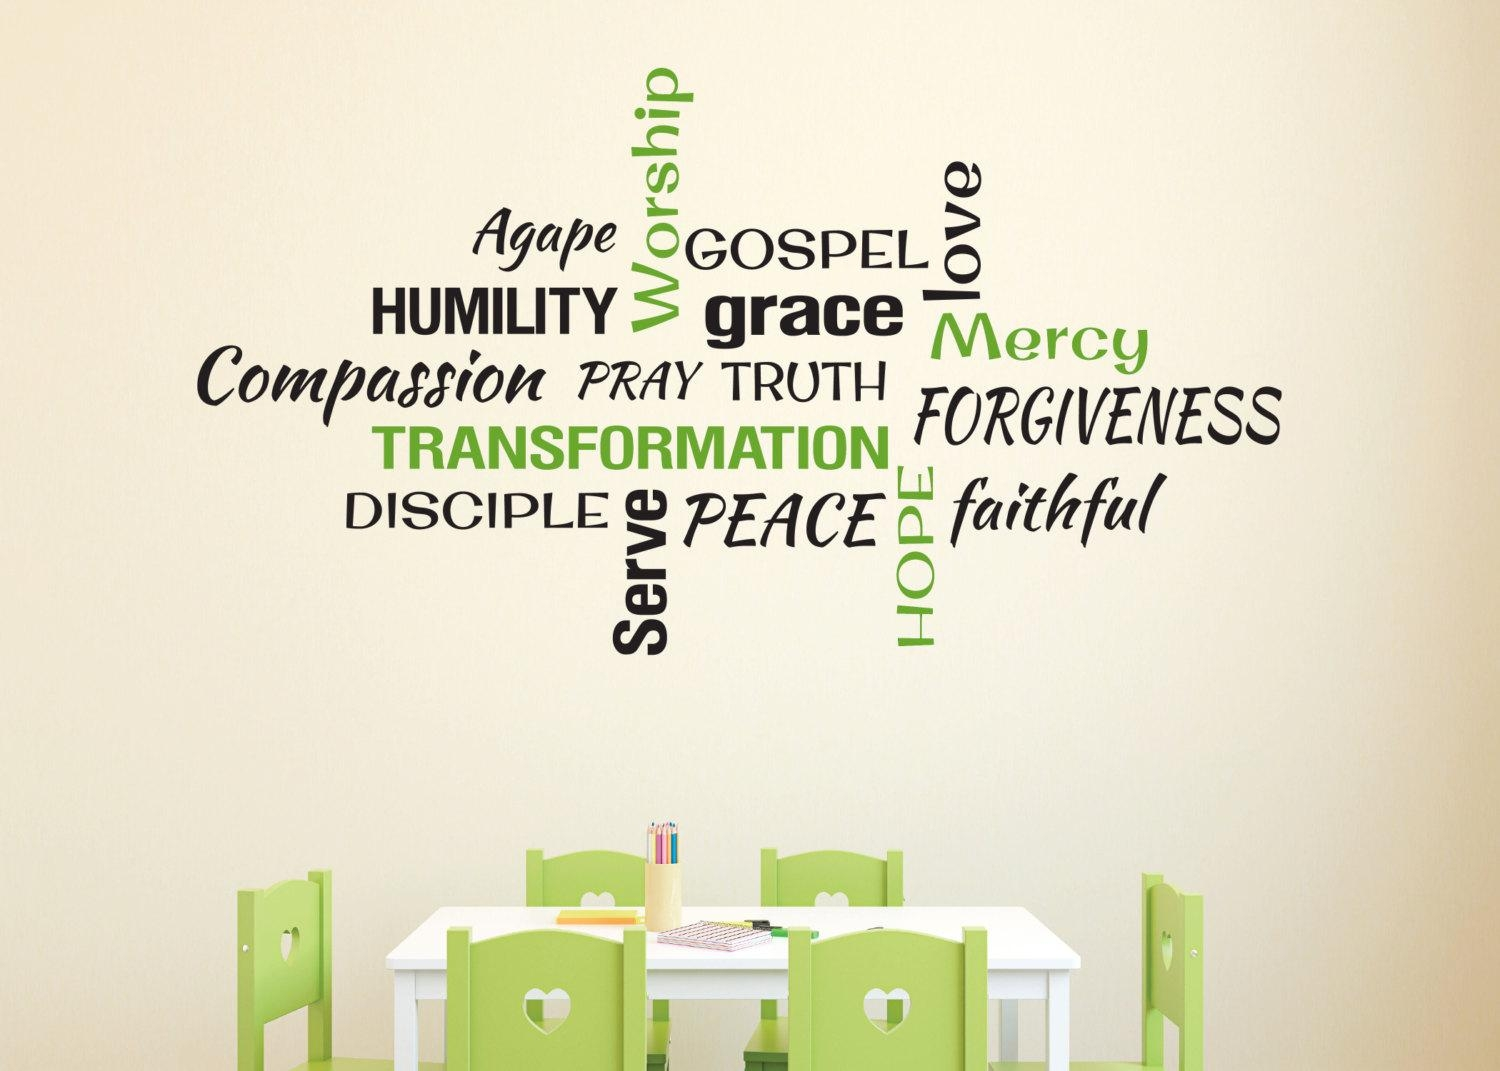 Youth Room Church Religious Christian Word Collage Subway Art regarding Christian Word Art For Walls